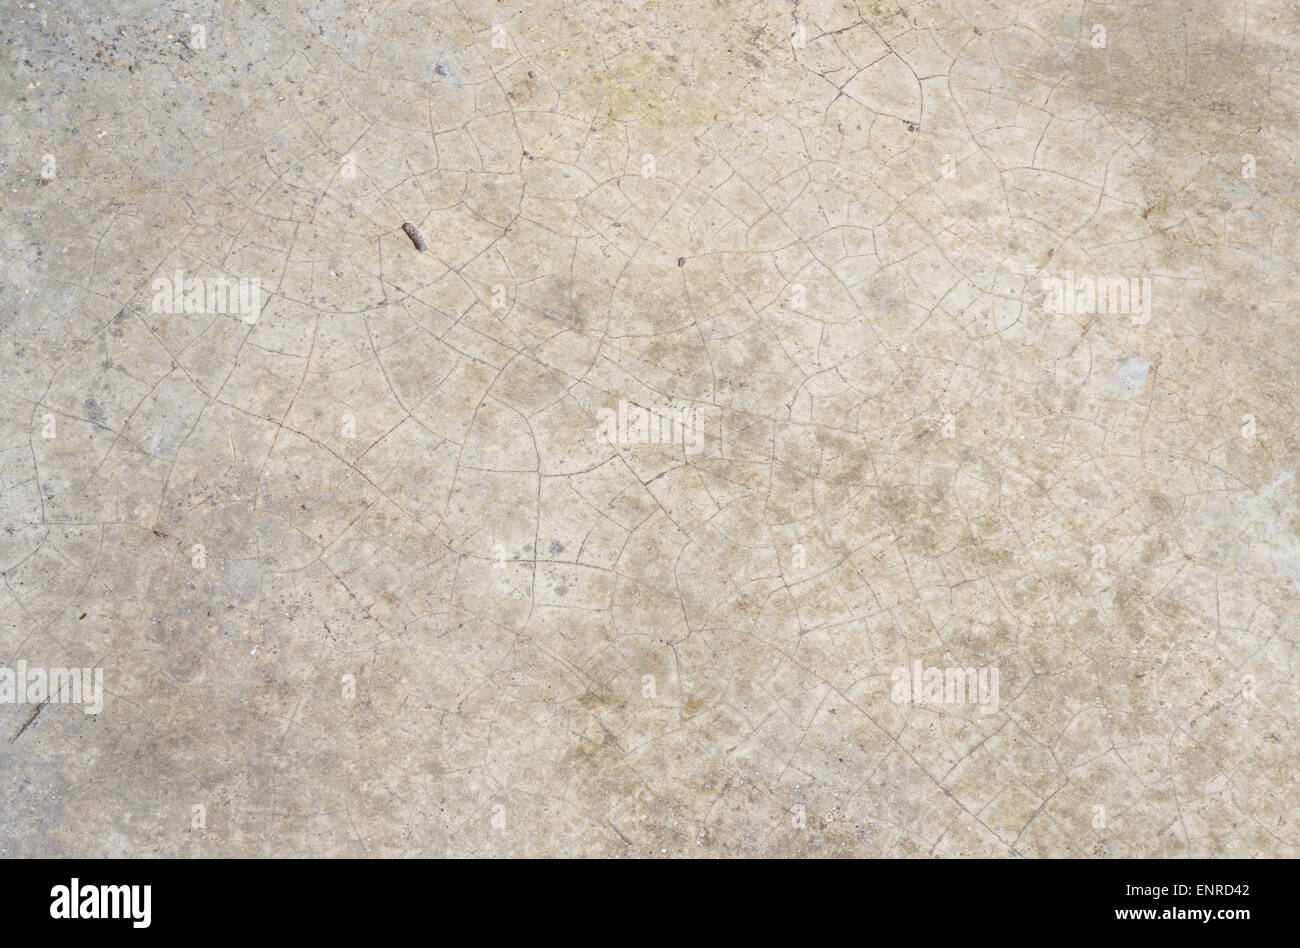 White Stone Granite with Crack on a Floor Texture - Stock Image